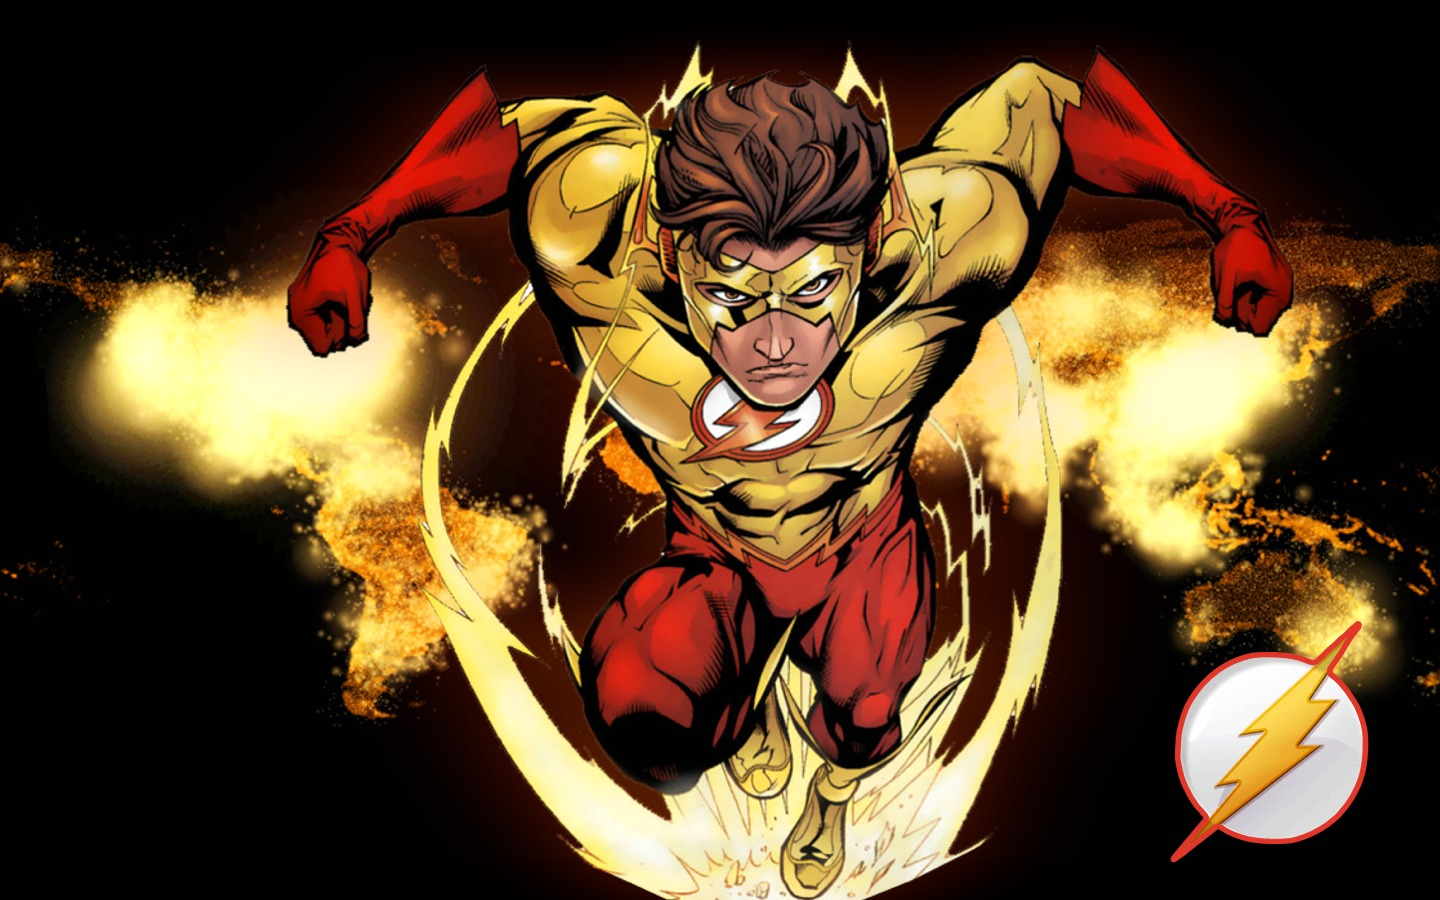 http://vignette1.wikia.nocookie.net/marvelcrossroads/images/0/02/Kid-Flash.jpg/revision/latest?cb=20141106161515